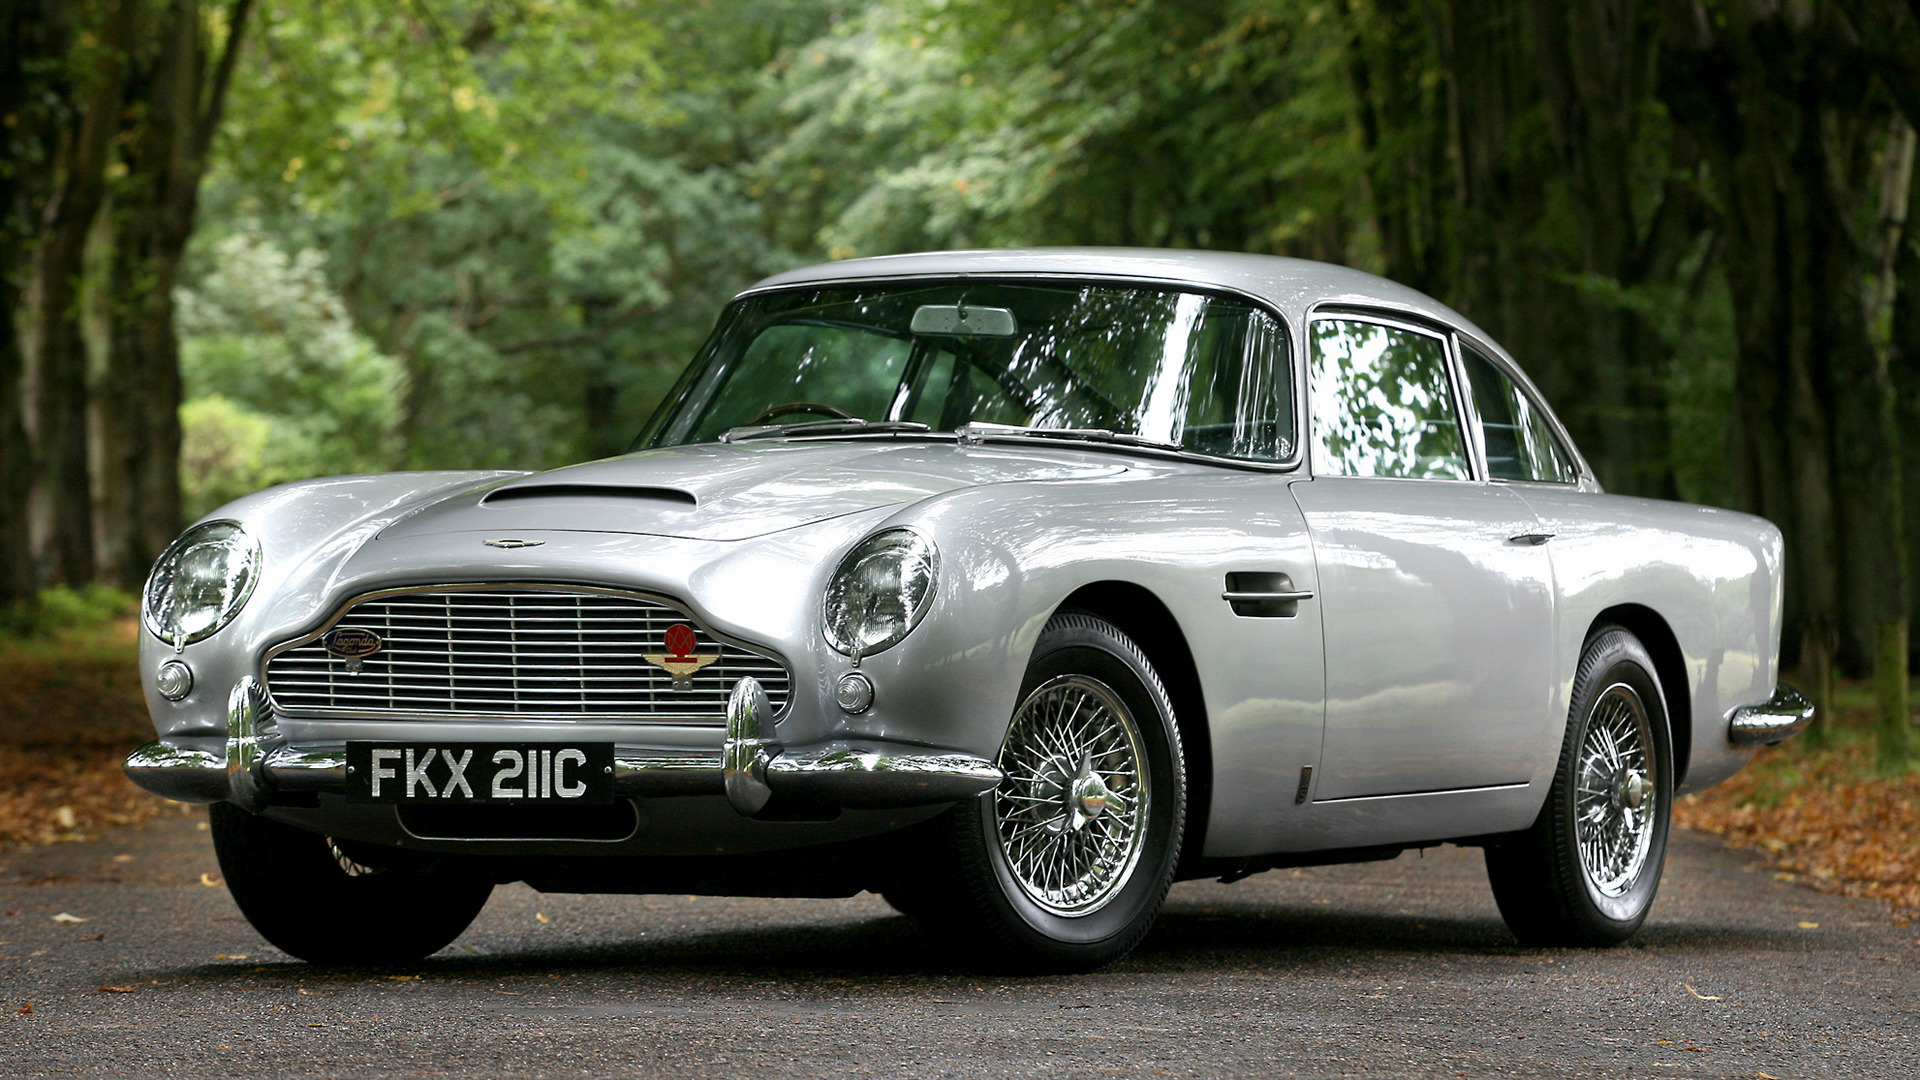 aston martin db5 (1963) uk wallpapers and hd images - car pixel